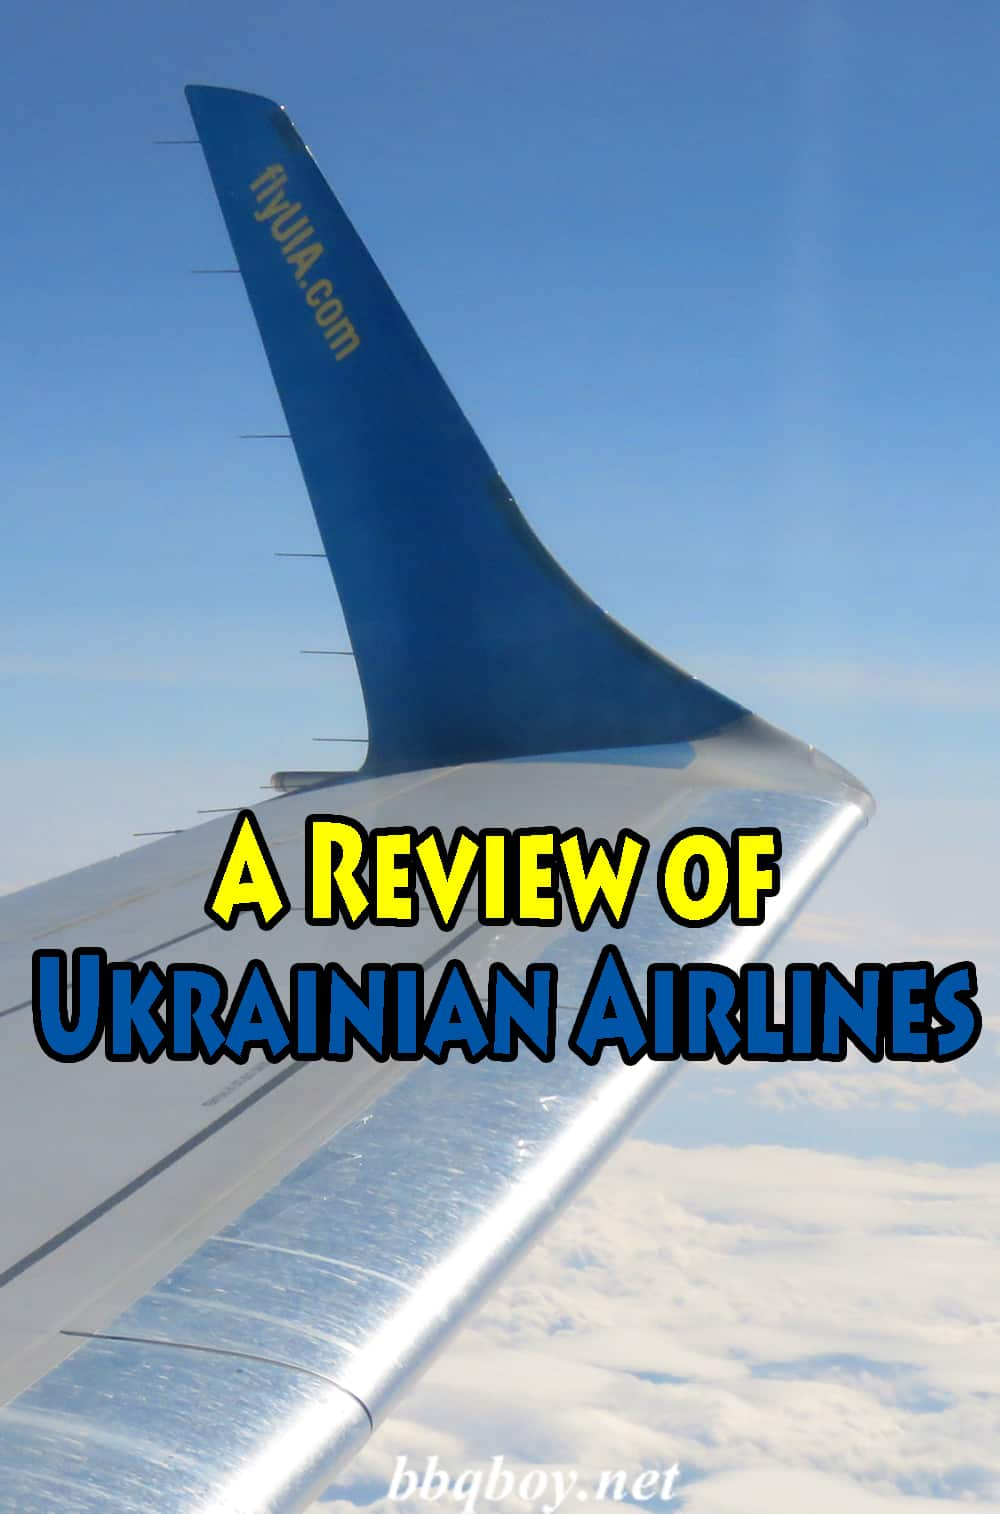 A Review of Ukrainian Airlines